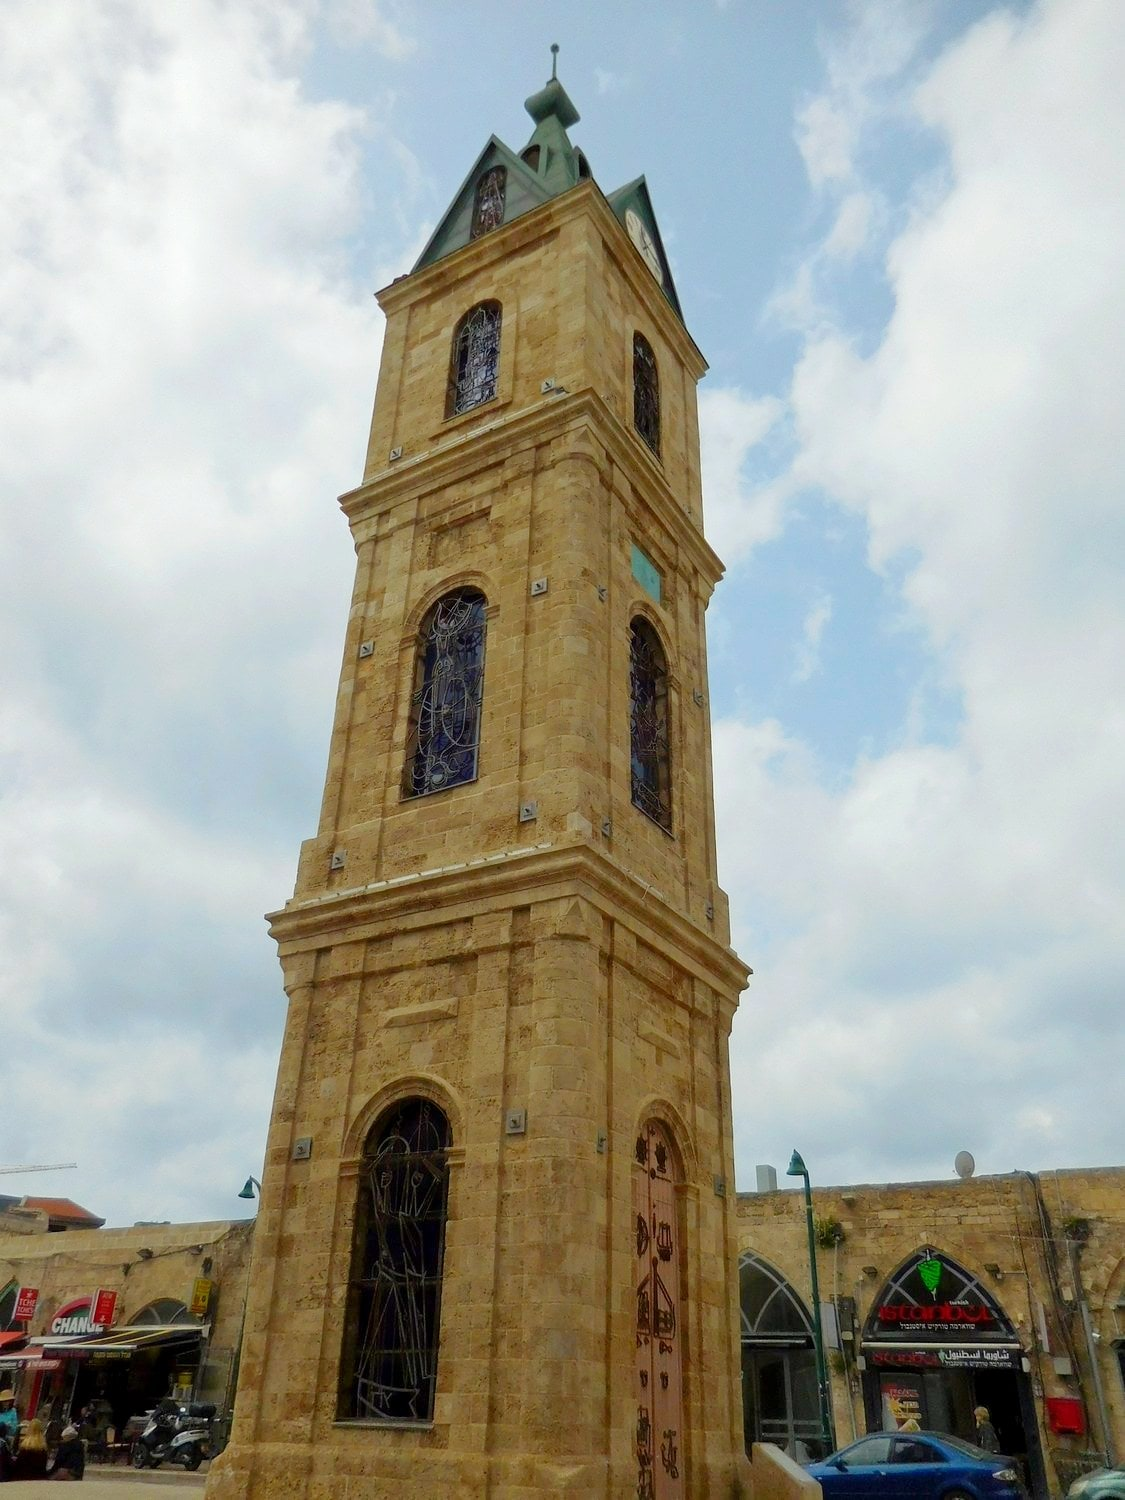 tel aviv, old jaffa, clock tower, french story